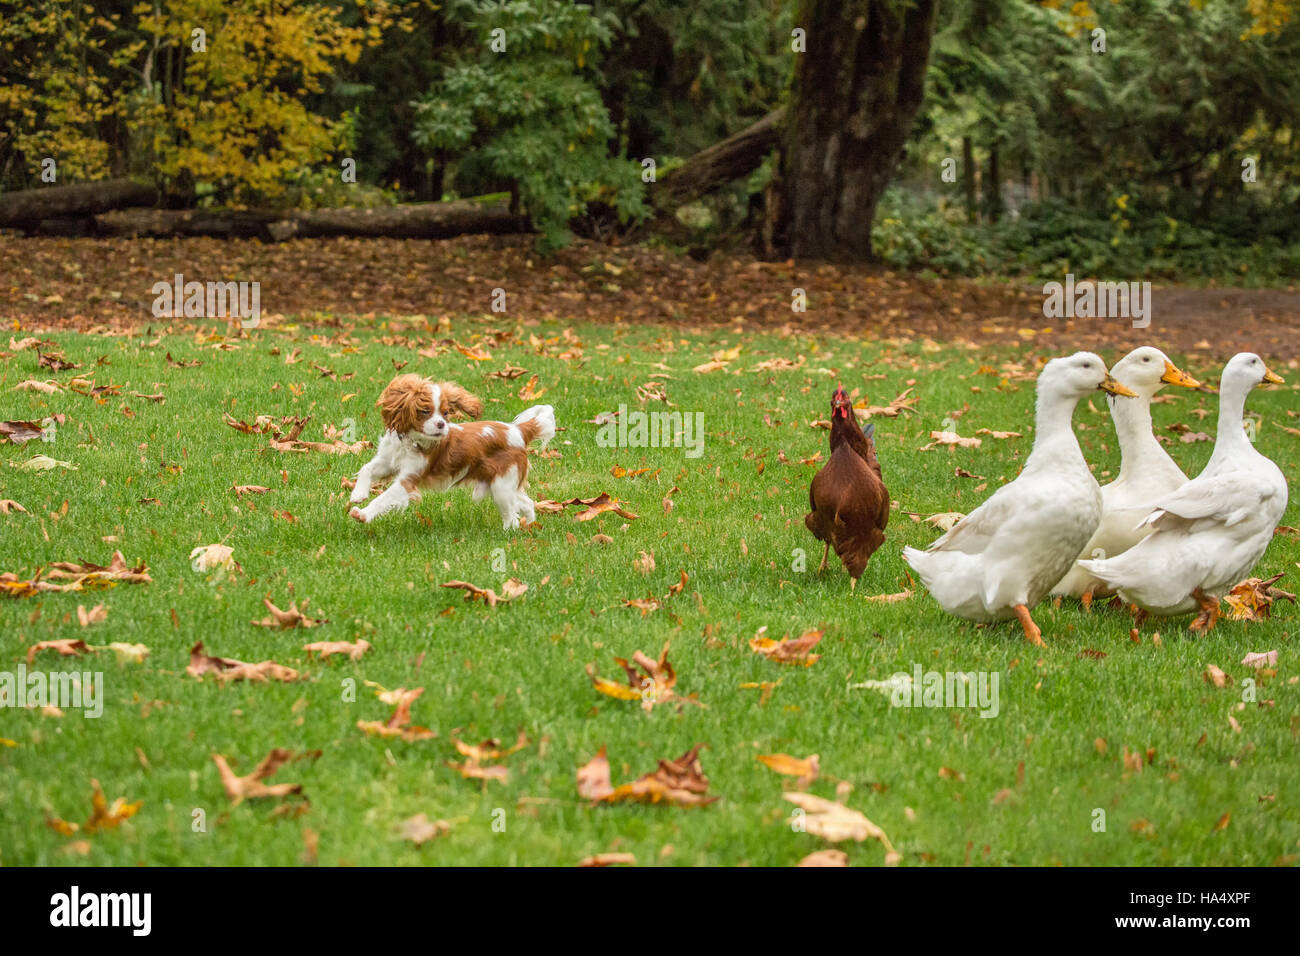 Six month old Cavalier King Charles Spaniel puppy chasing free-ranging Pekin ducks and a Rhode Island Red chicken - Stock Image